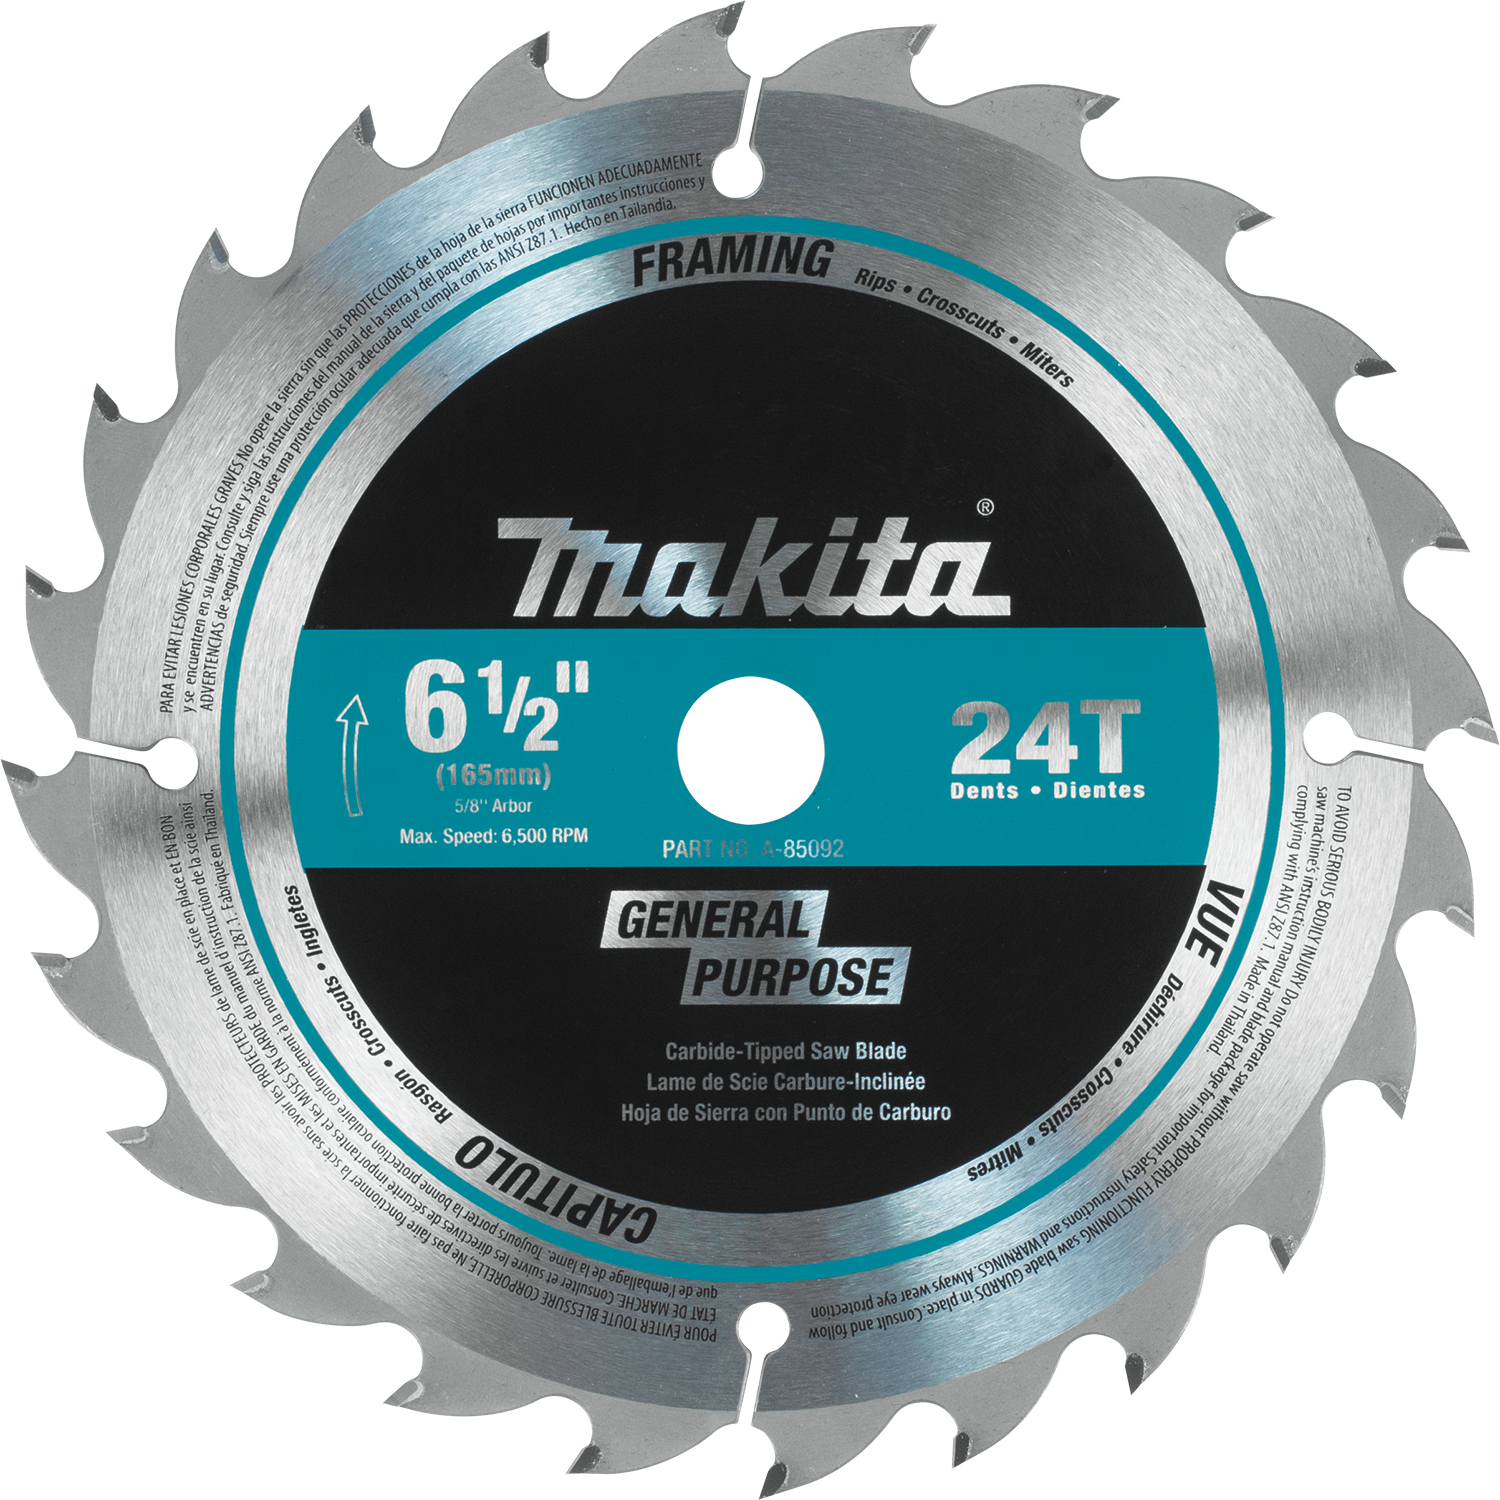 Makita usa product details a 85092 circular saw blade general purpose a 85092 greentooth Images